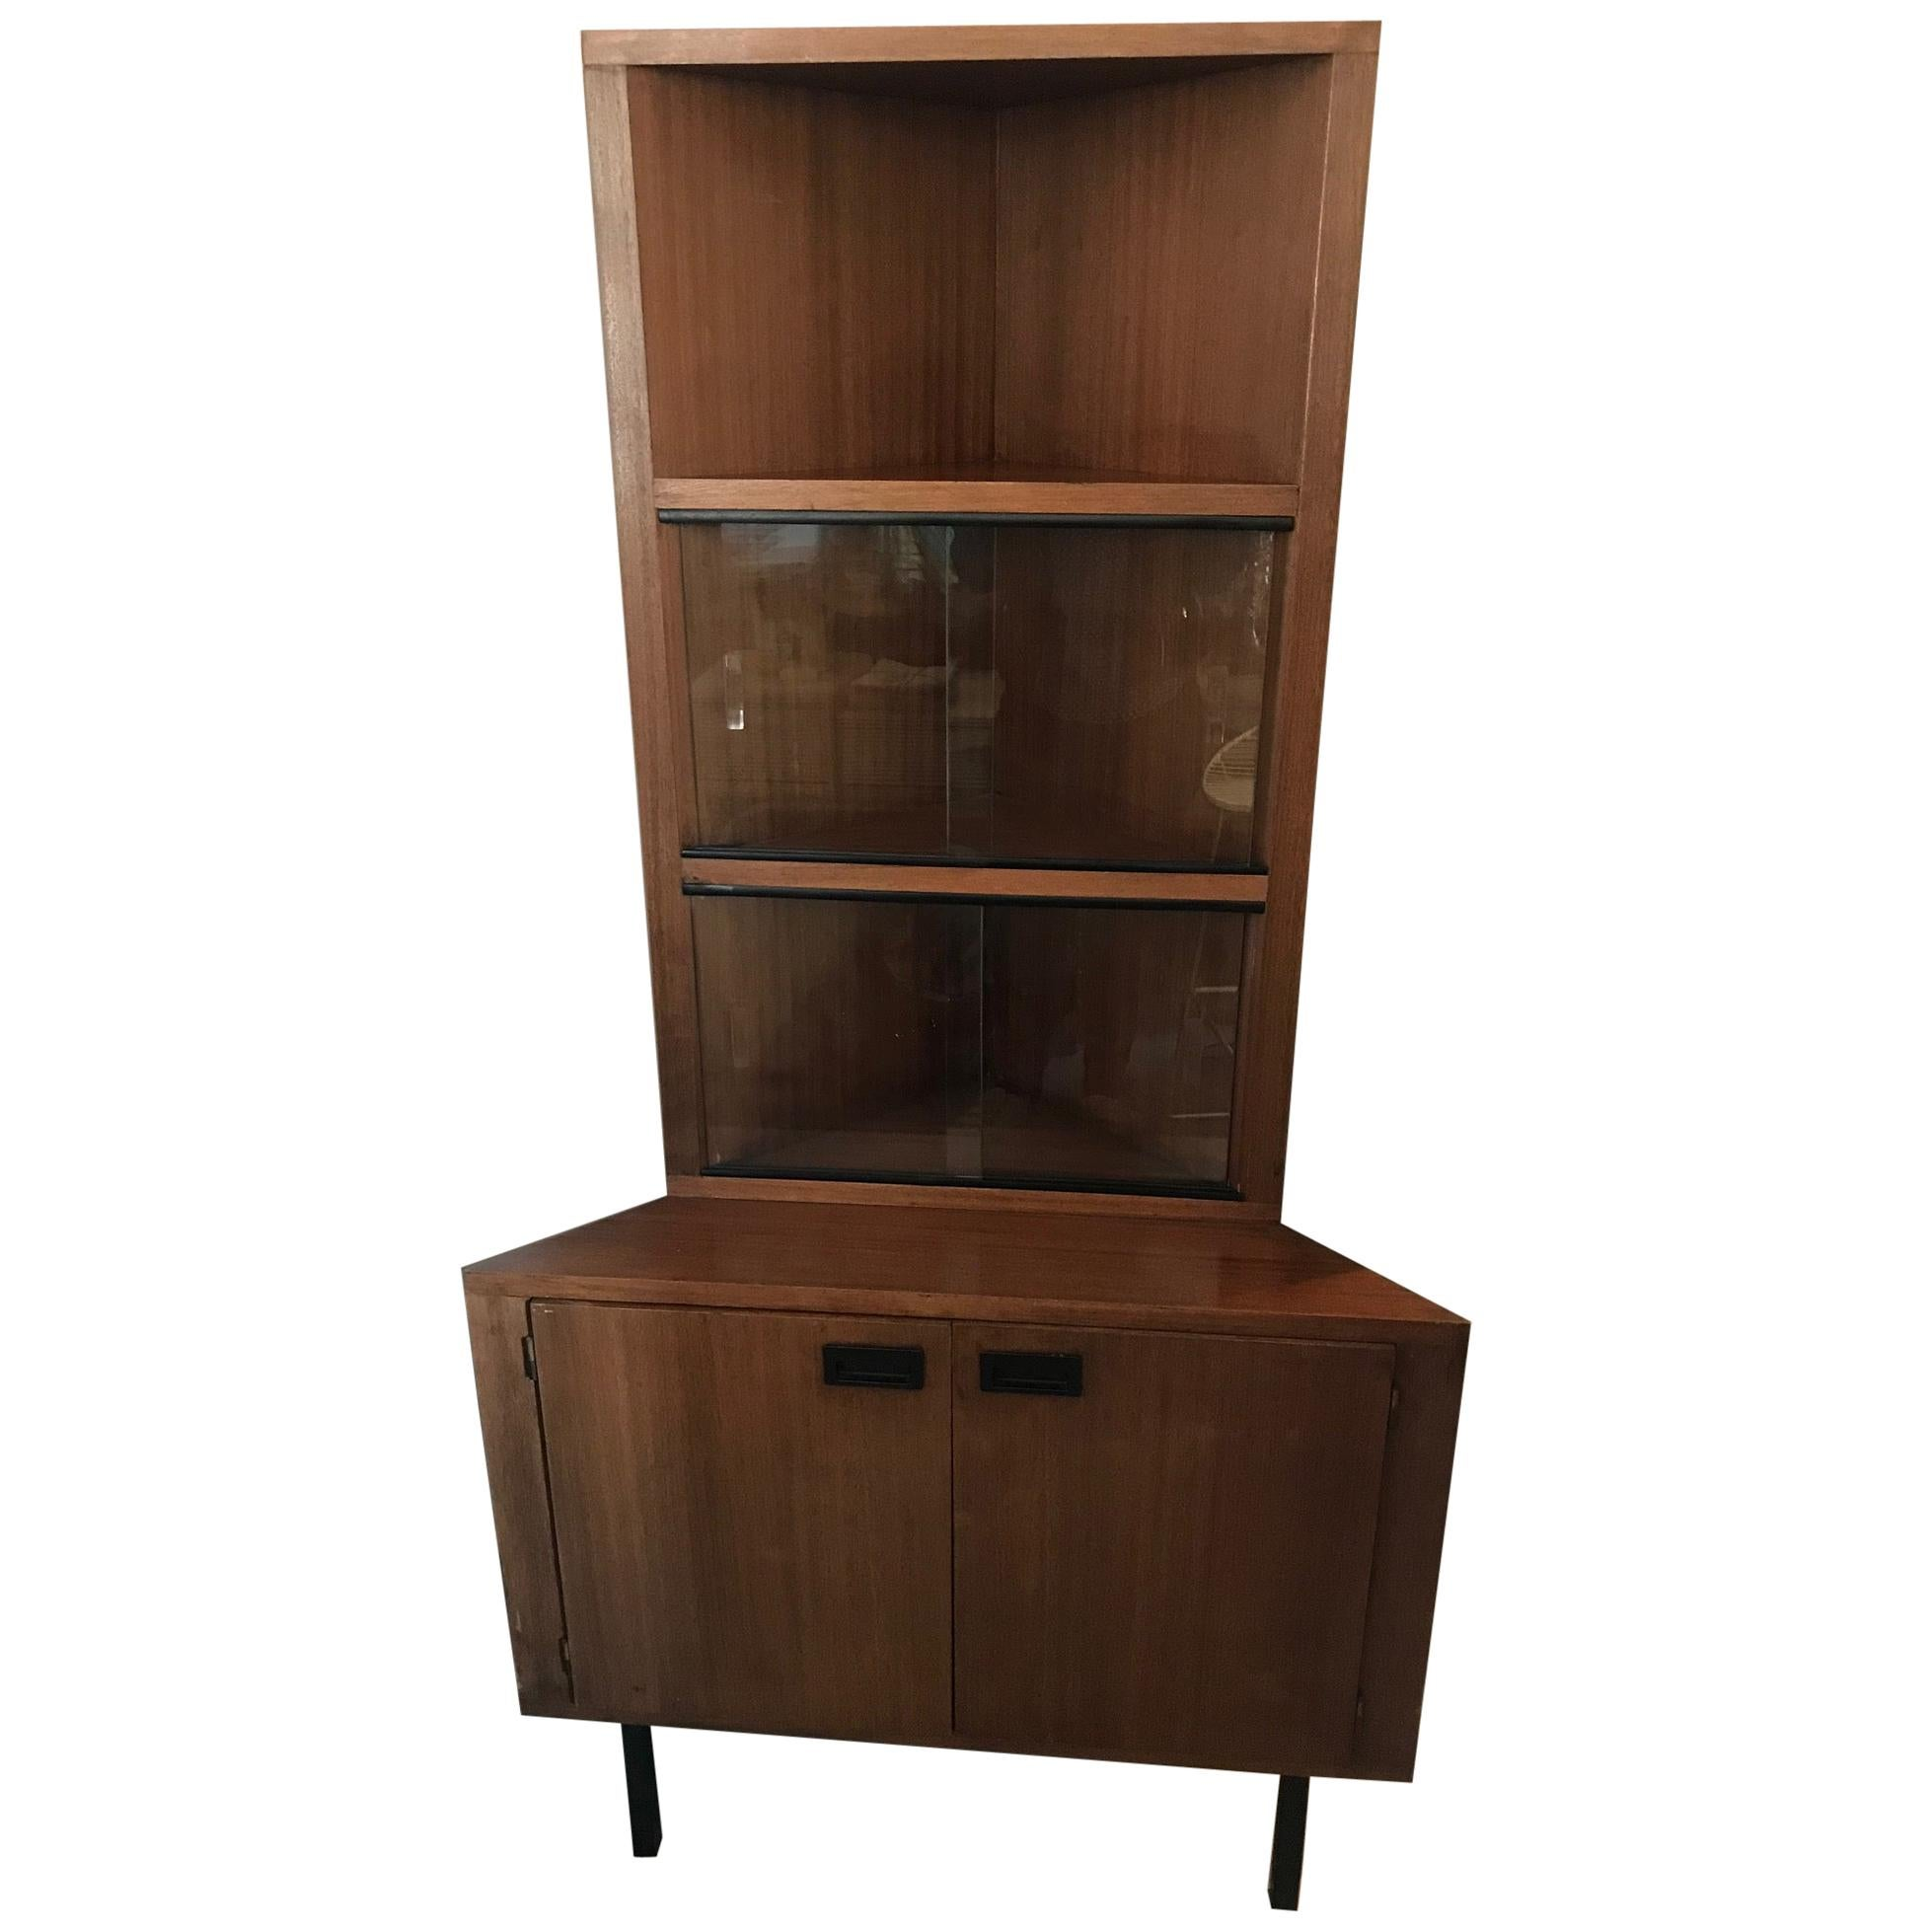 20th Century French Corner Cabinet, 1960s